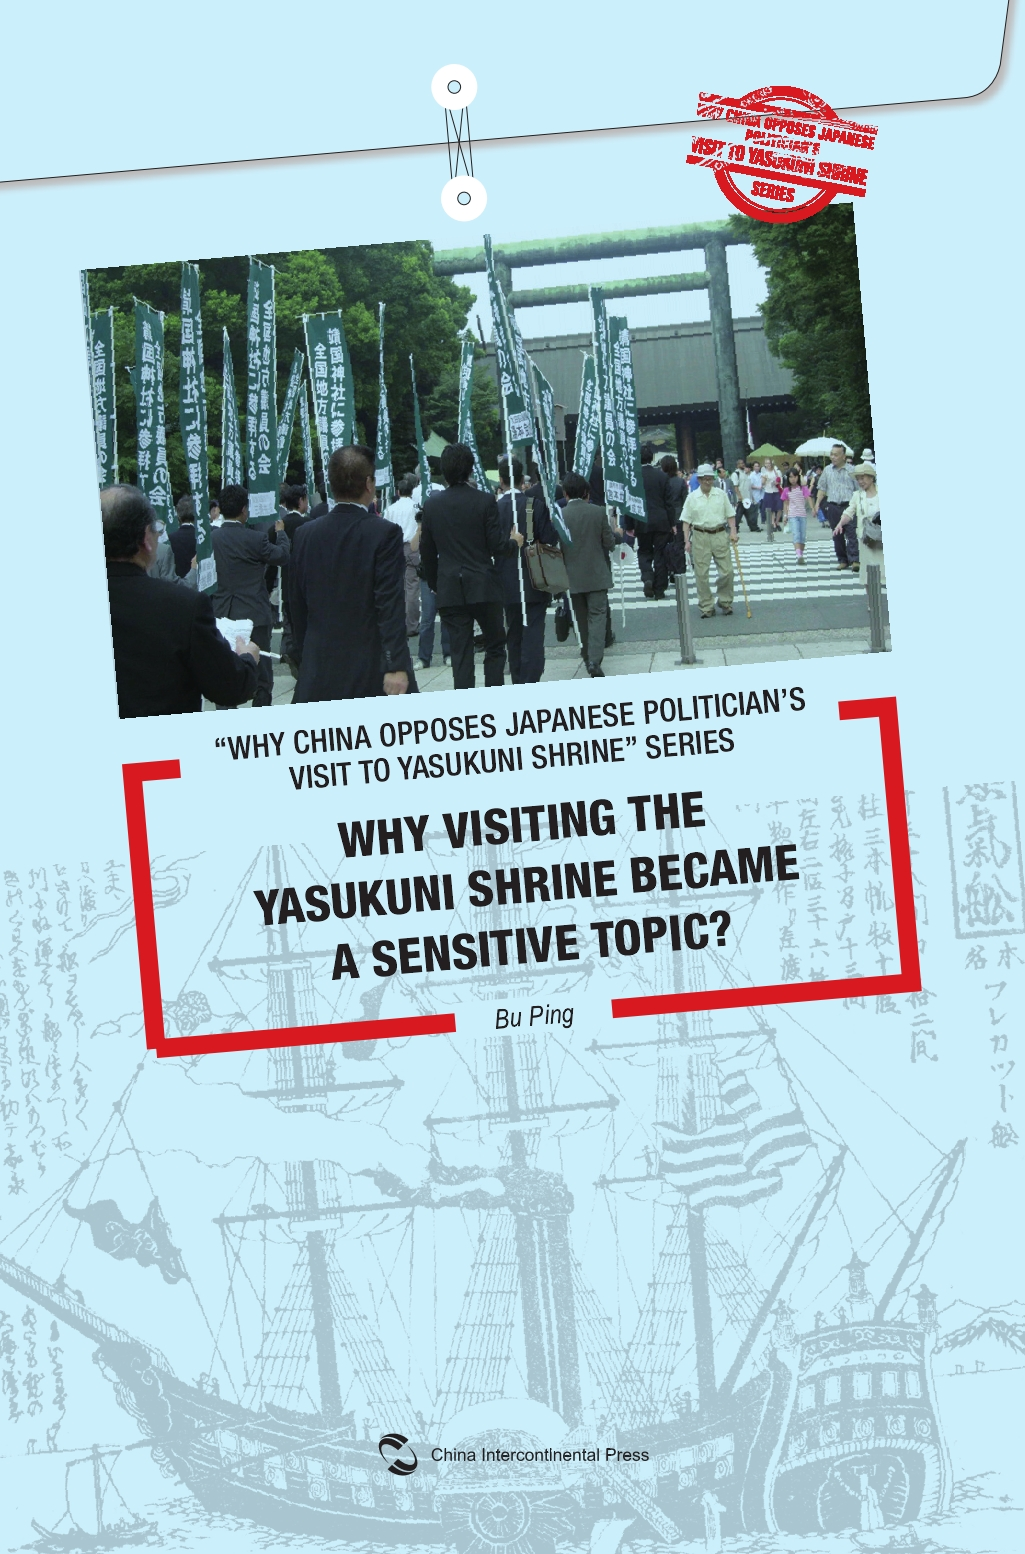 Why Visiting the Yasukuni Shrine Became A Sensitive Topic?